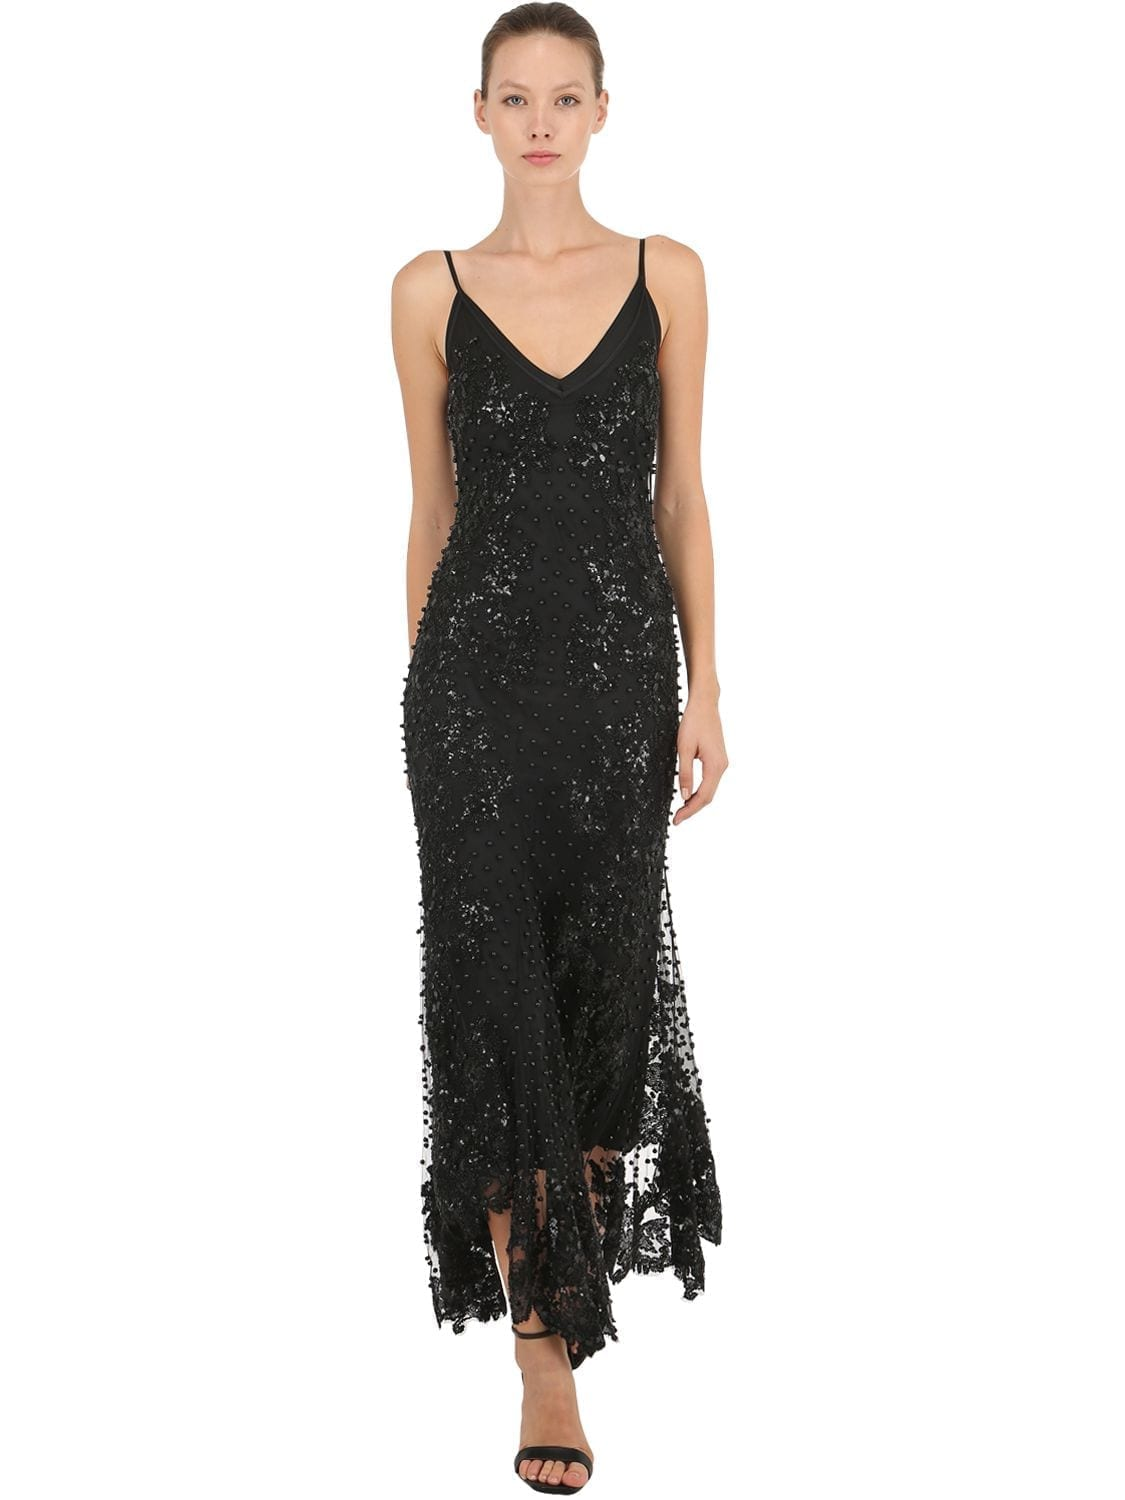 AMEN COUTURE Beaded & Sequined Long Flared Black Dress